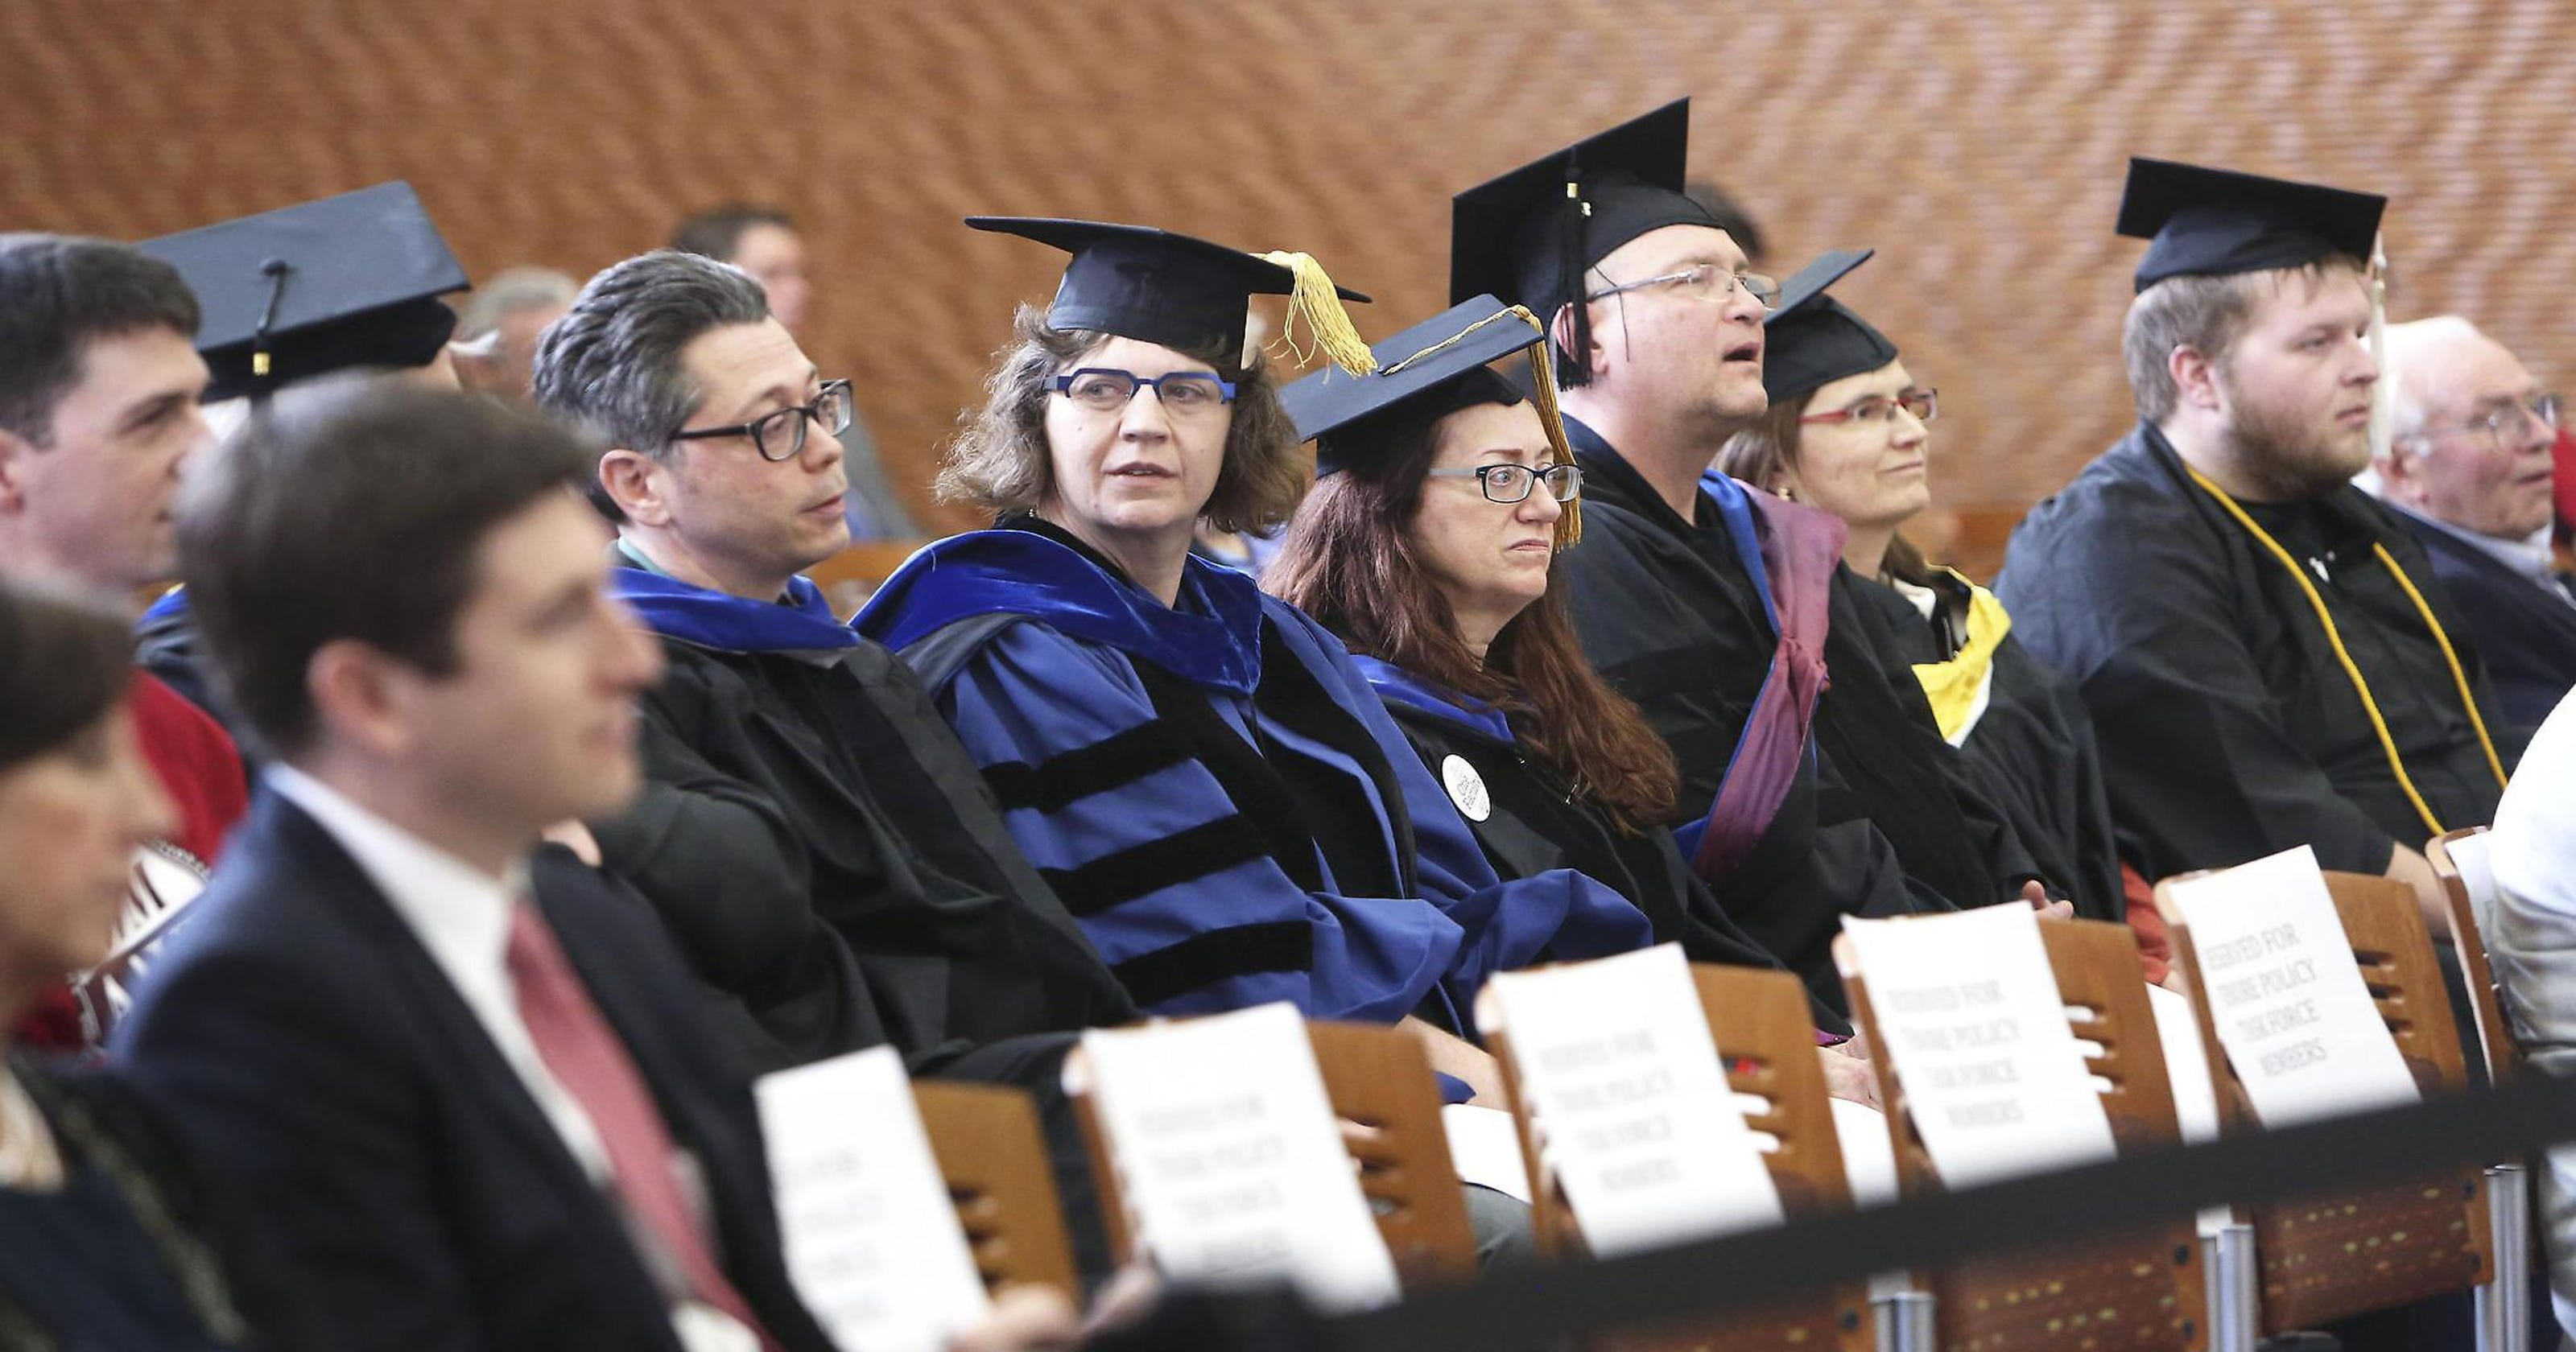 UW Regents OK new tenure policy after tense session